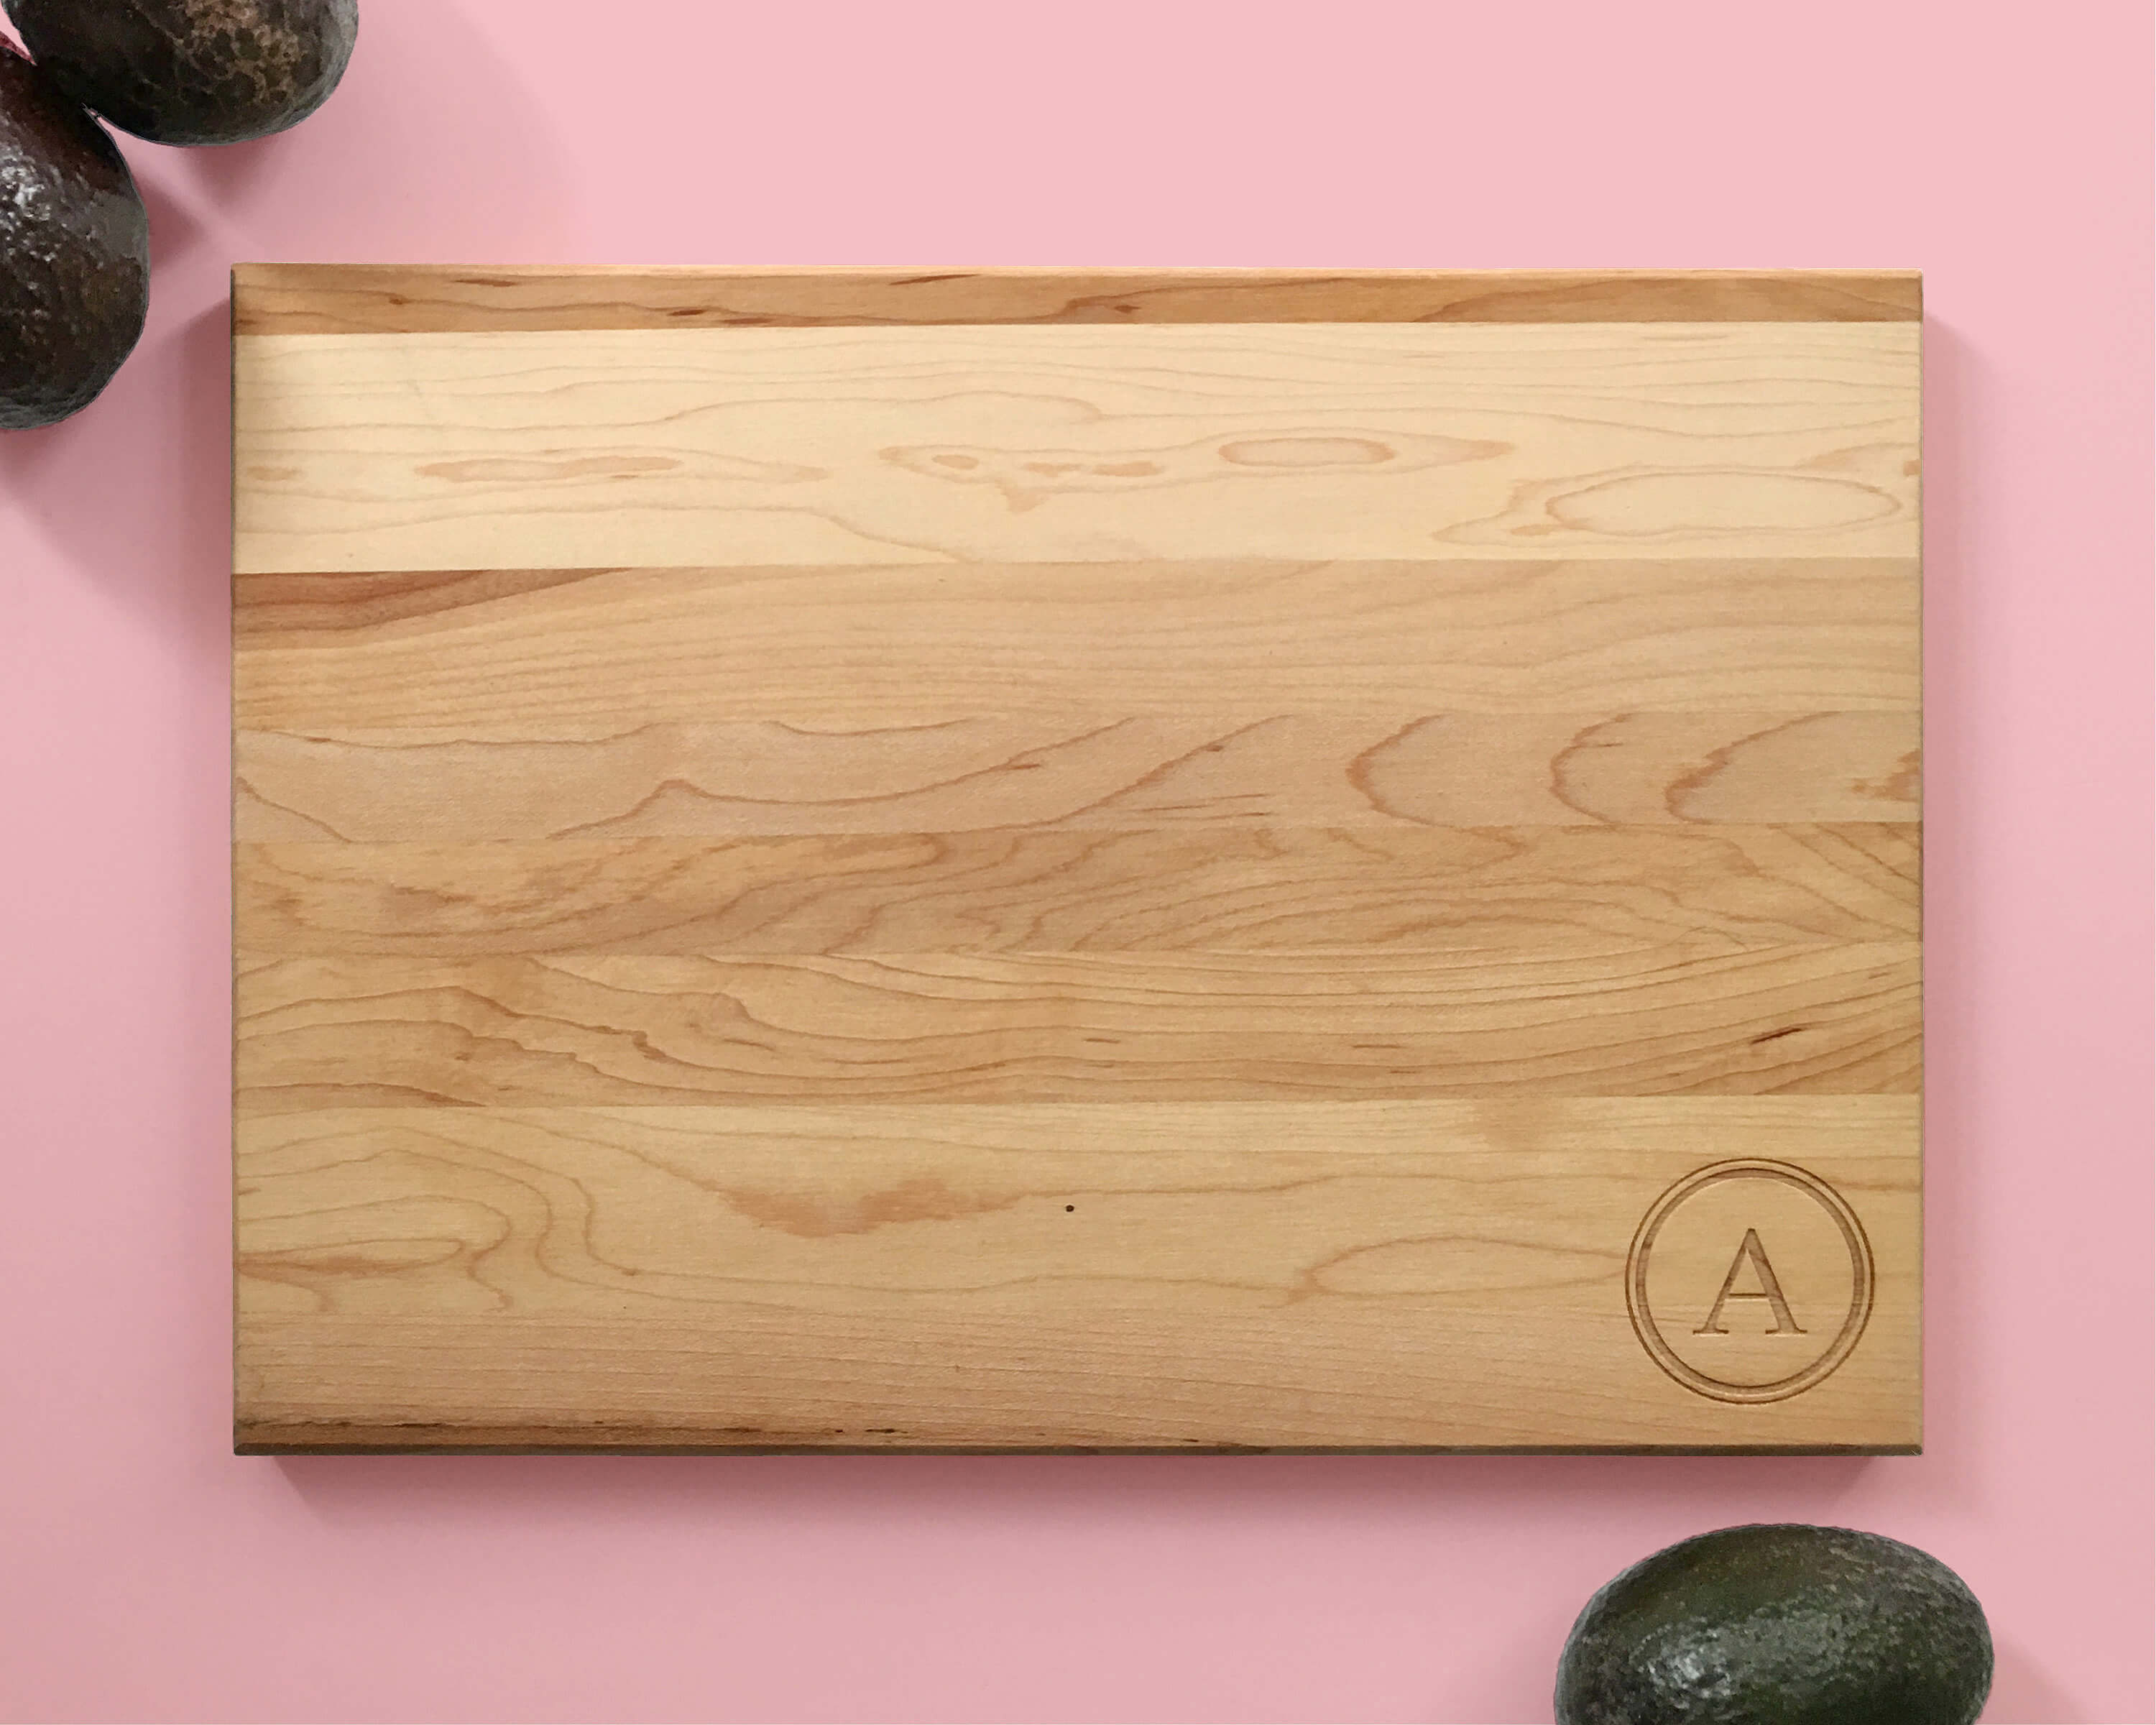 Personalized Engraved Wood Cutting Board Initial In Circle